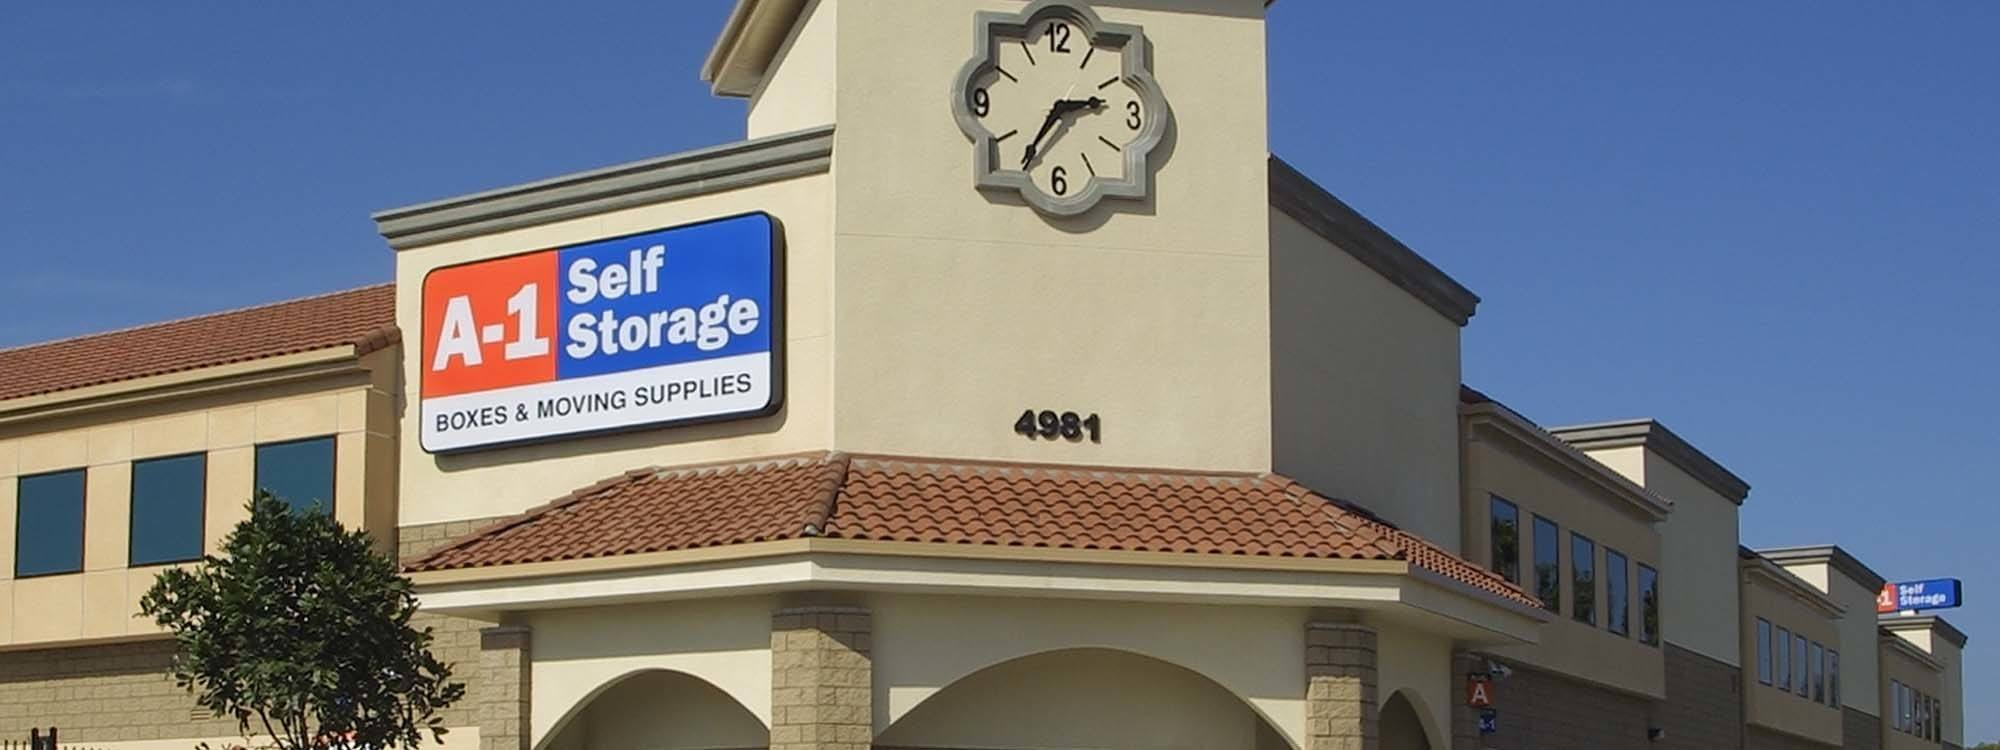 Self Storage Greater Village La Mesa, California  A1